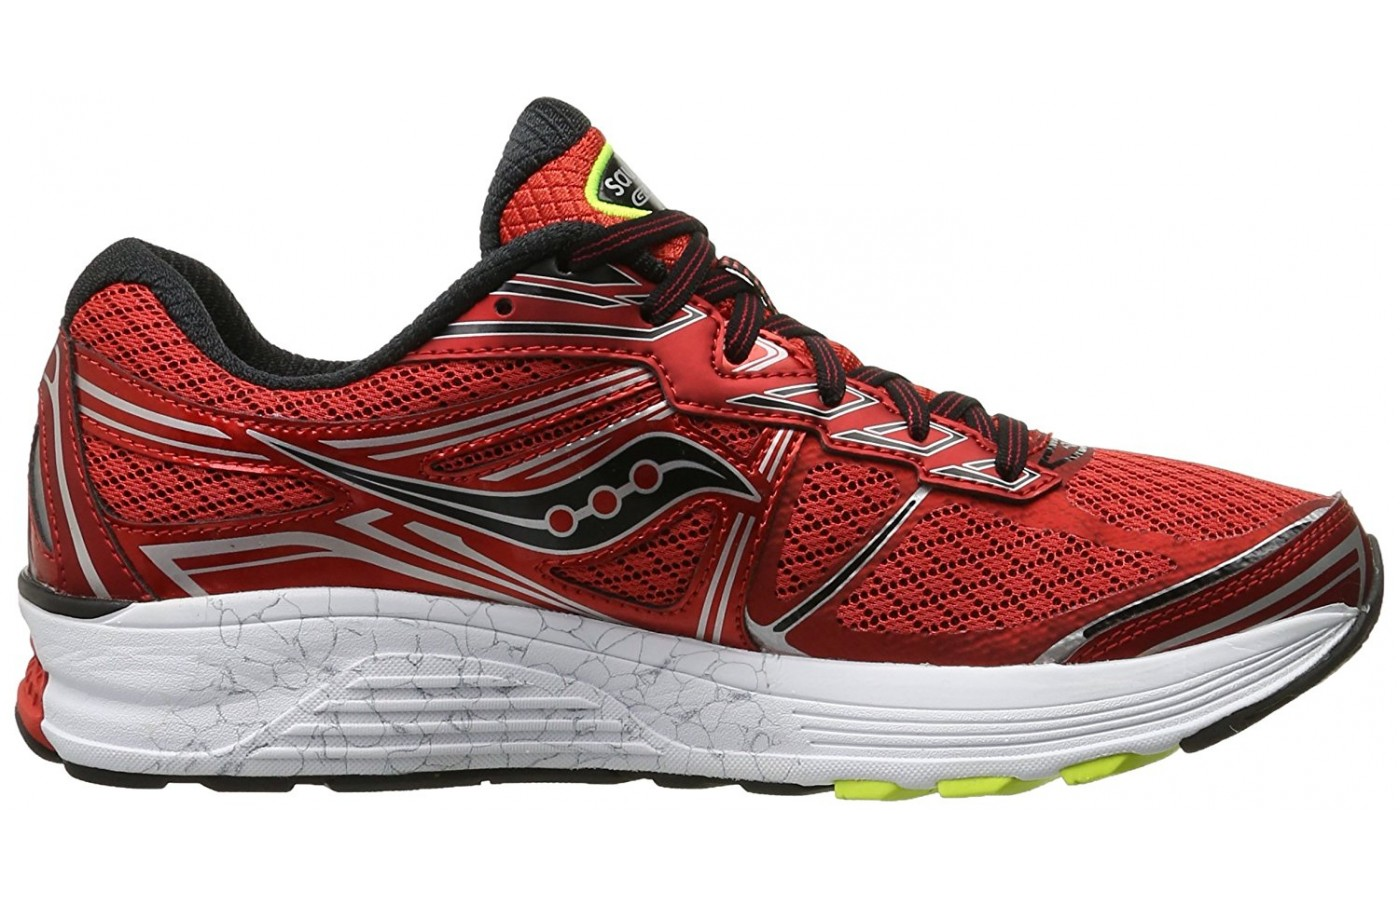 d8671f891273 ... left to right view of the Saucony Guide 9 ...